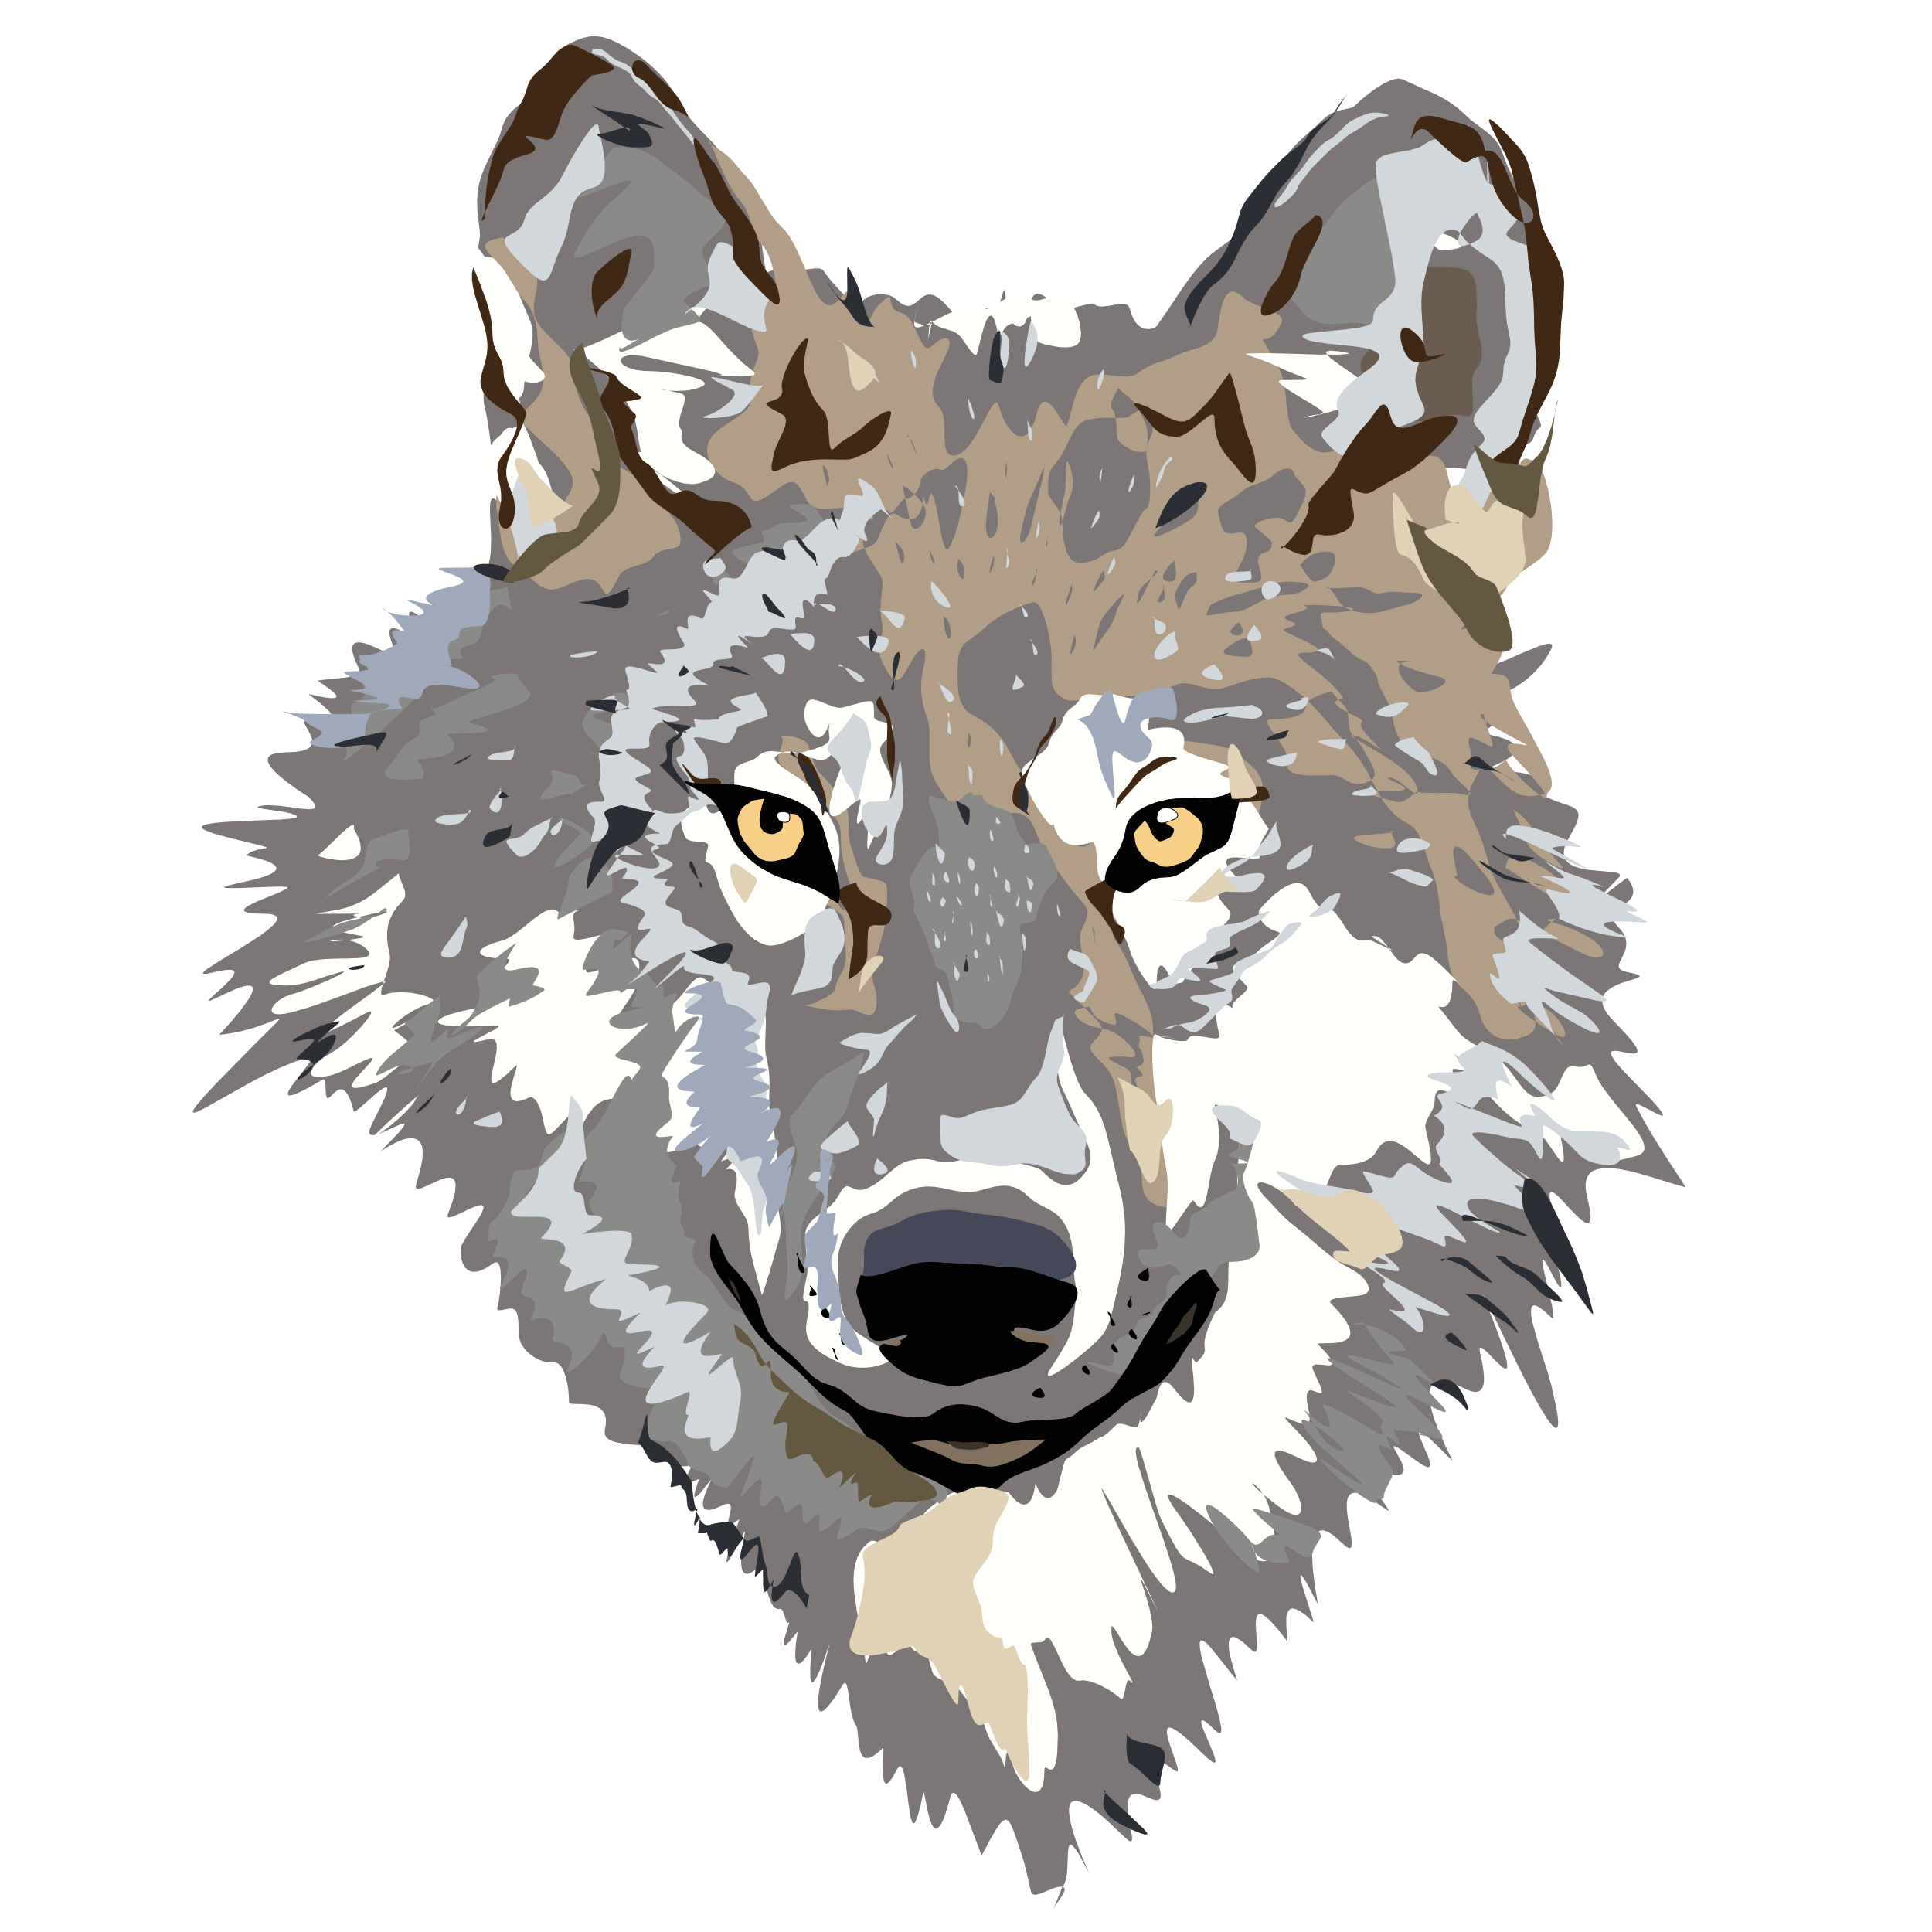 Png Wolf Head - PNG Wolf Head Transparent Wolf Head.PNG Images.   PlusPNG